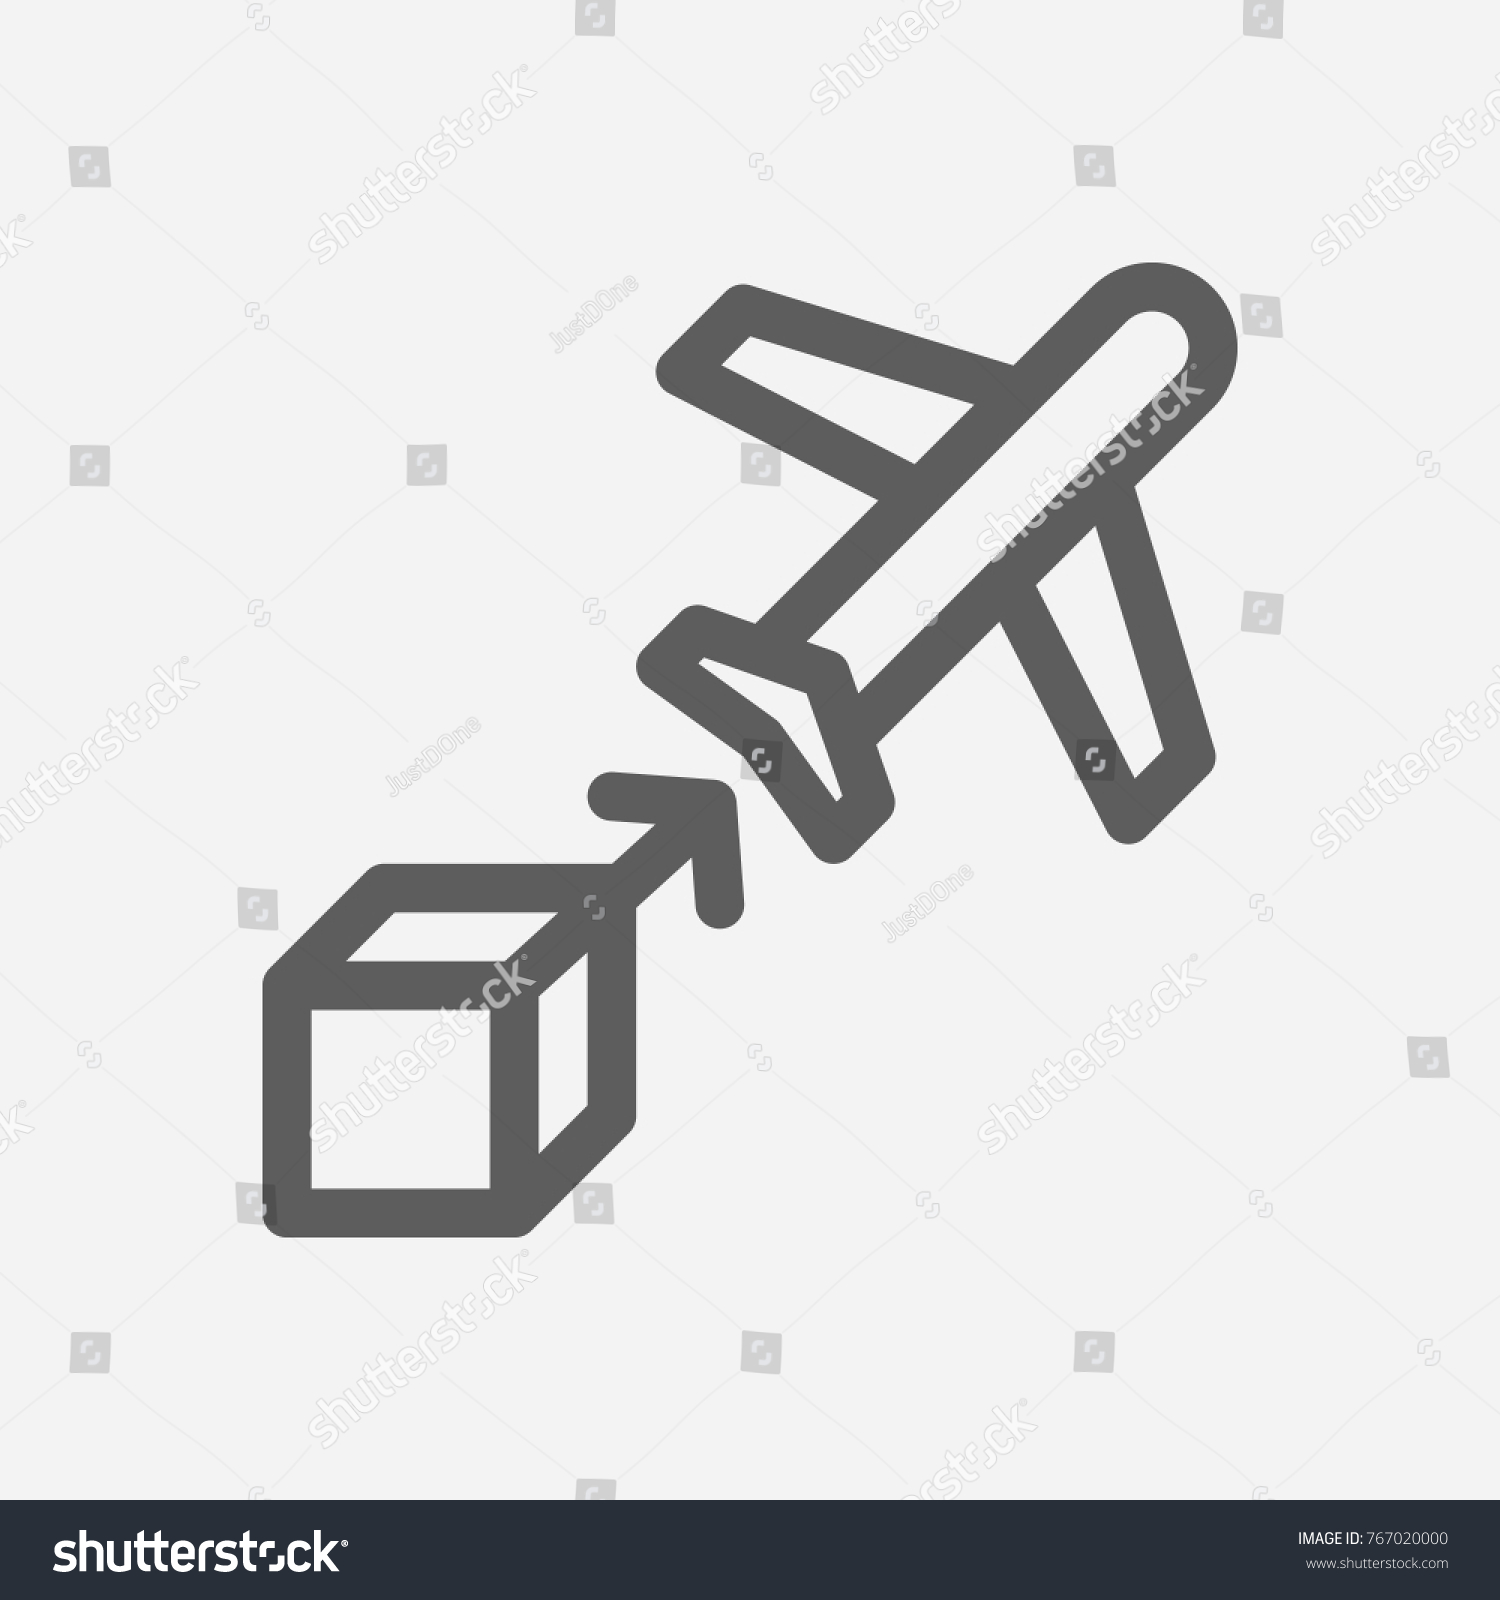 Airplane delivery icon line symbol isolated stock vector 767020000 airplane delivery icon line symbol isolated vector illustration of freight sign airplane delivery icon concept buycottarizona Gallery